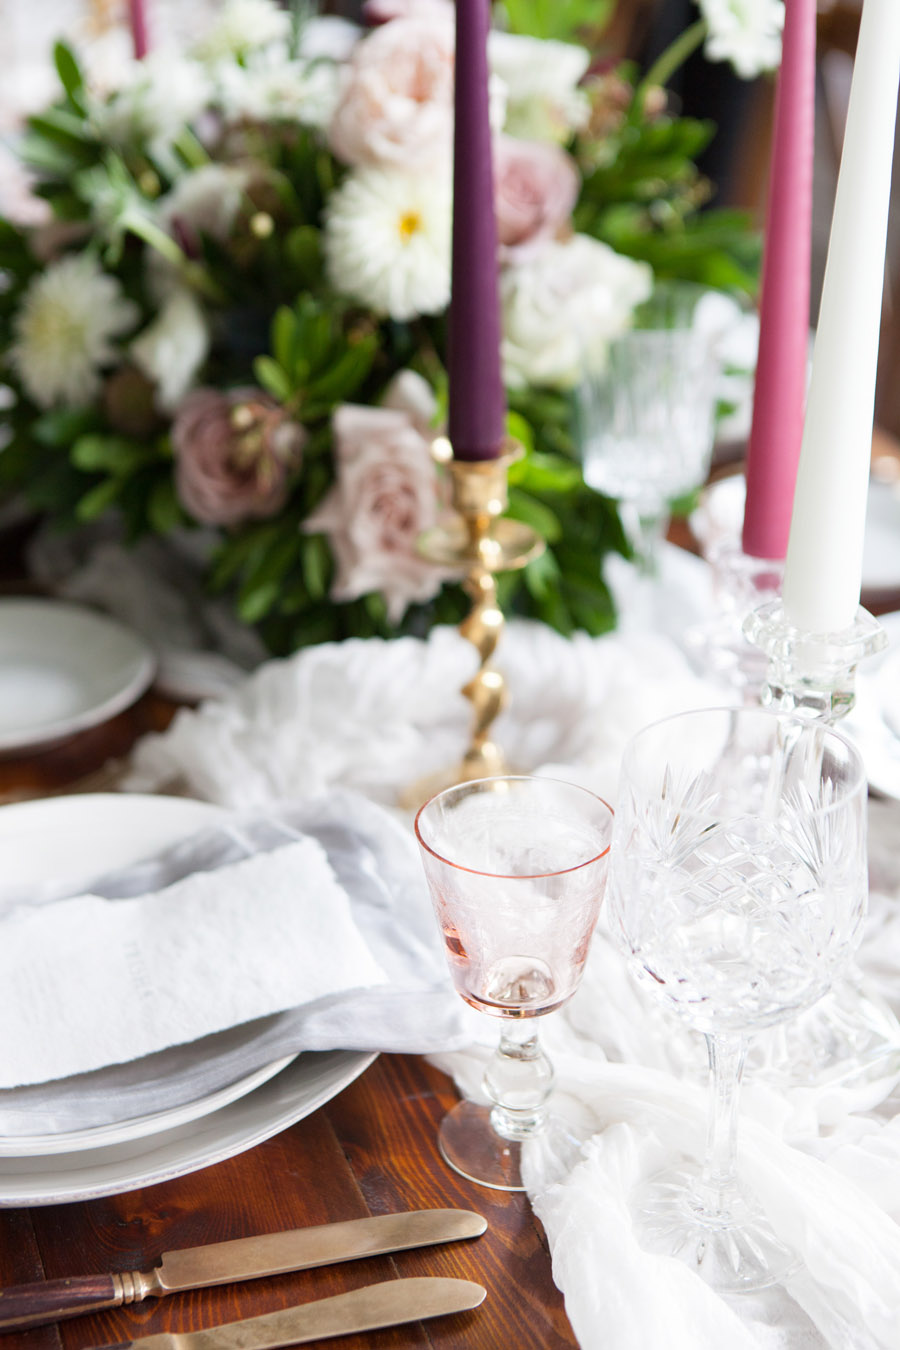 Elegant and timeless wedding look for 2019 brides and grooms, image credit Amanda Karen Photography (5)